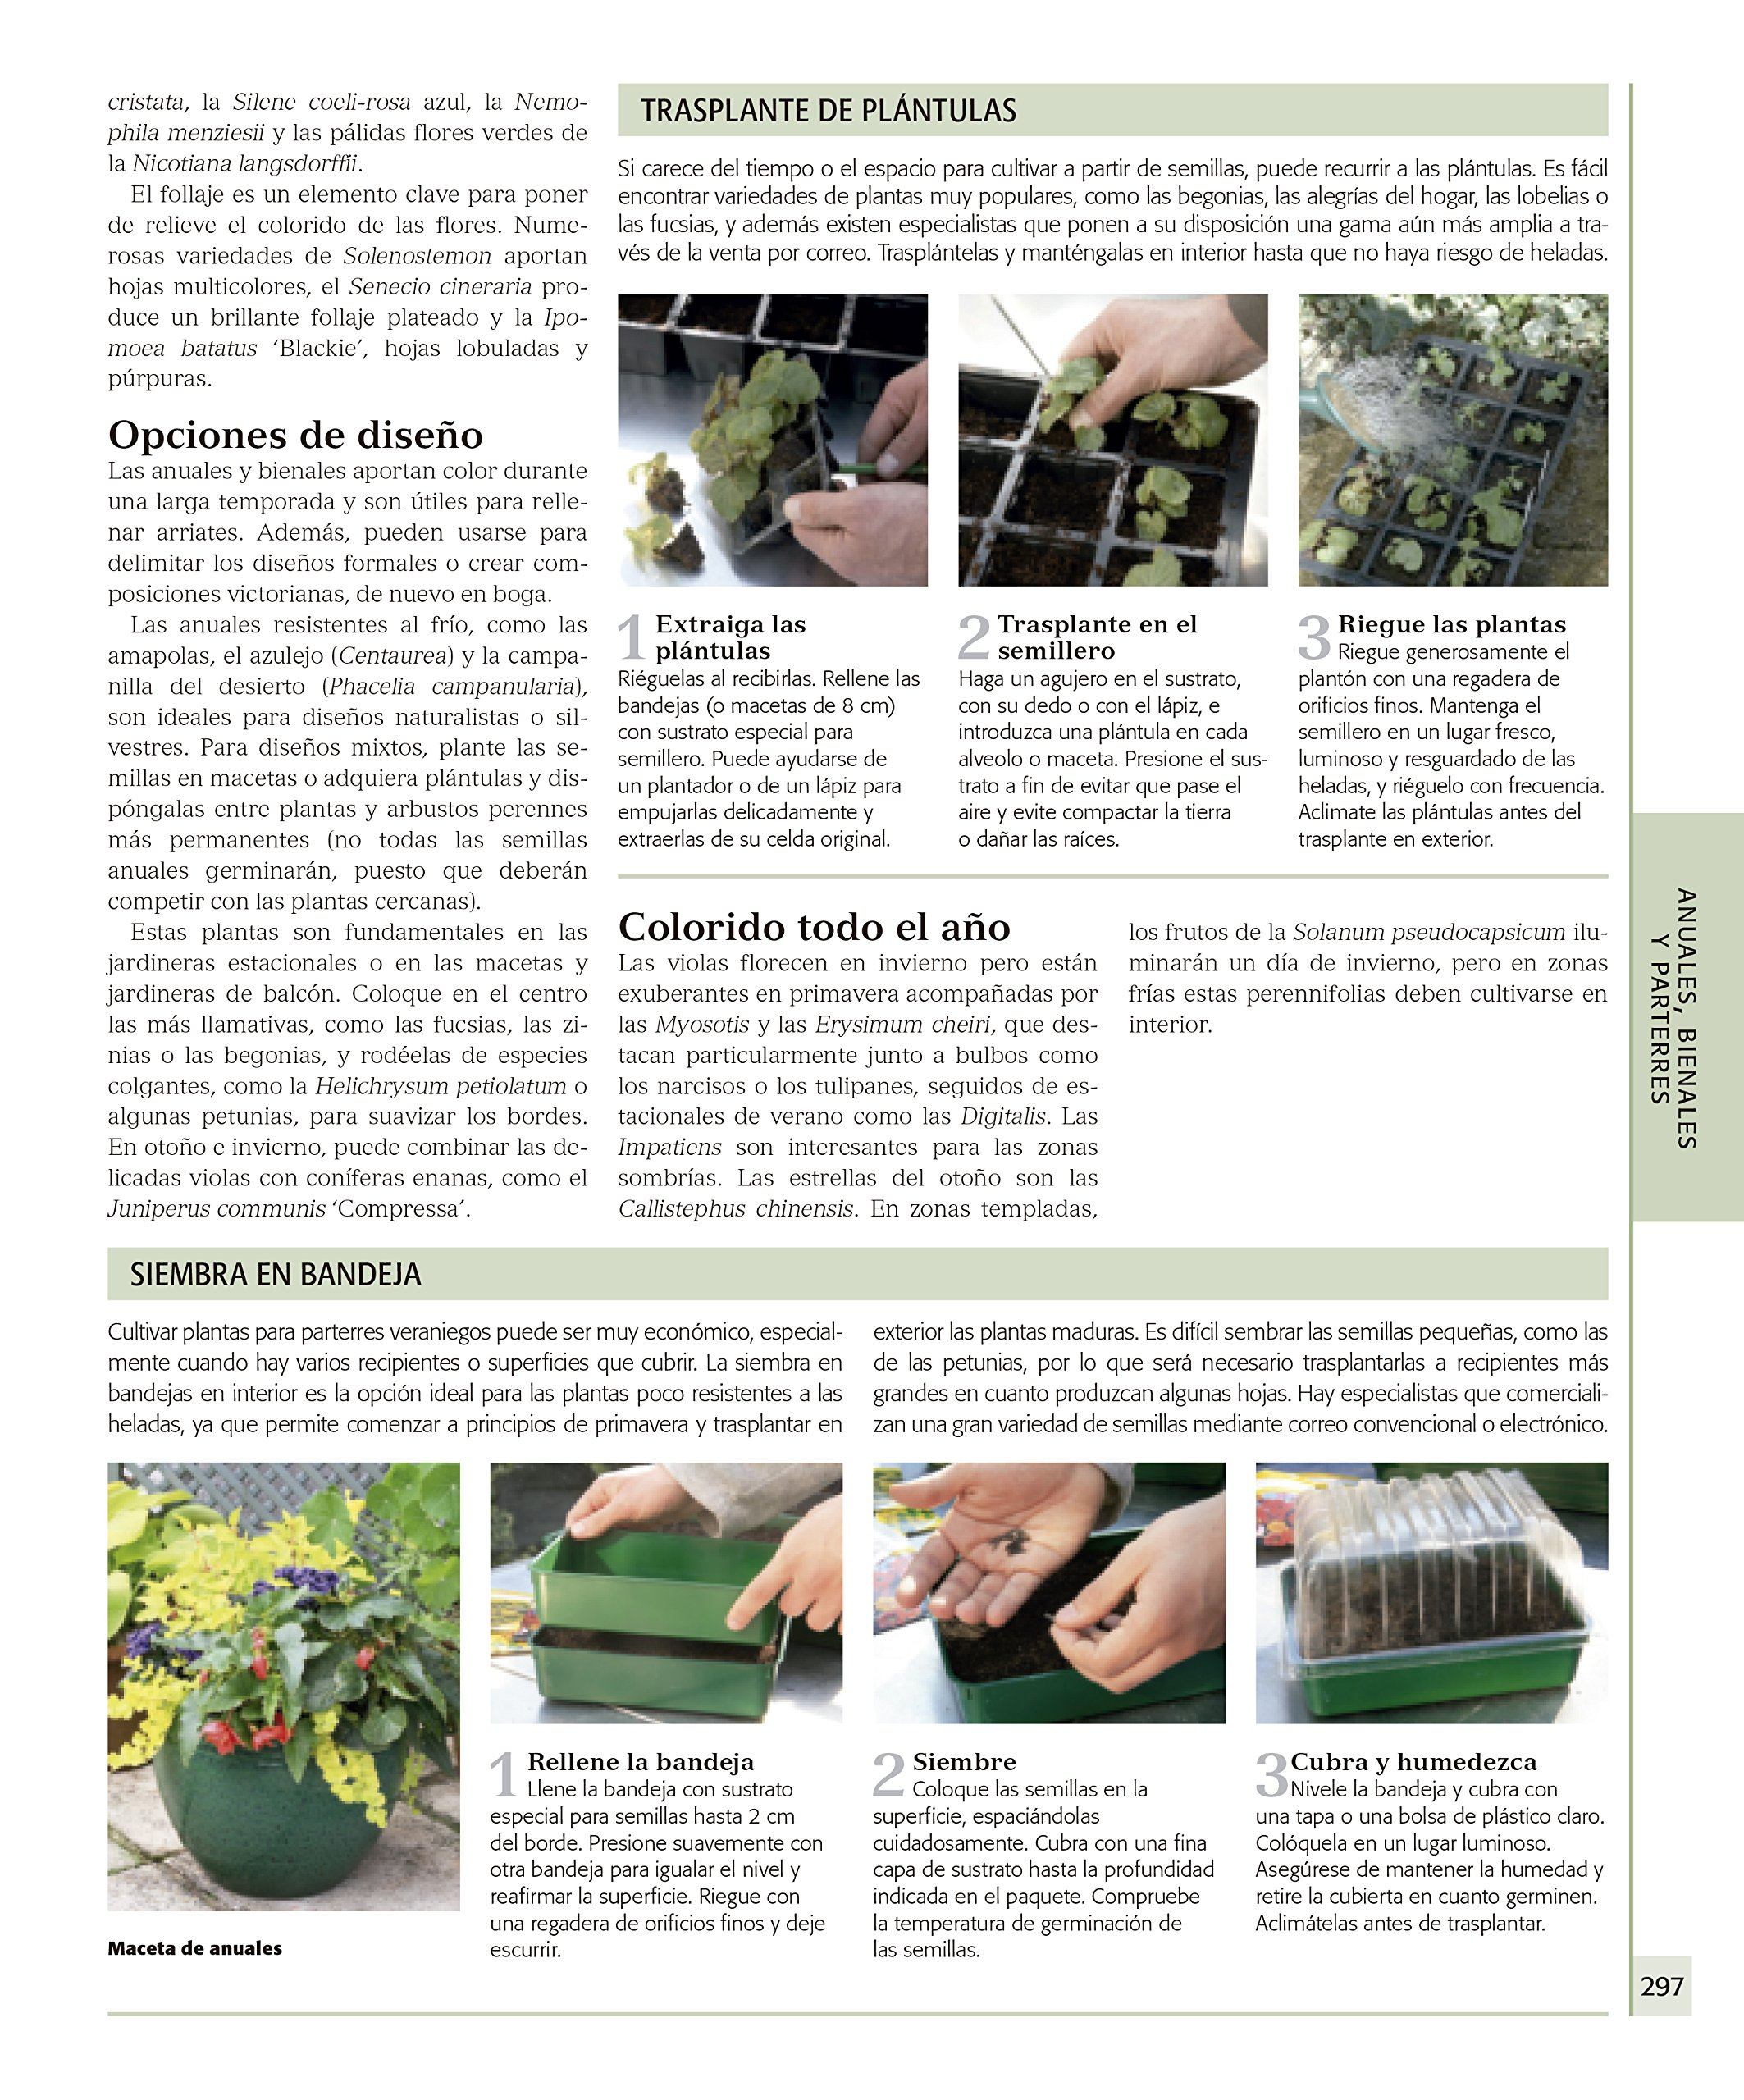 ENCICLOPEDIA DE PLANTAS Y FLORES. THE ROYAL HORTICULTURAL SO: 9788416449798: Amazon.com: Books